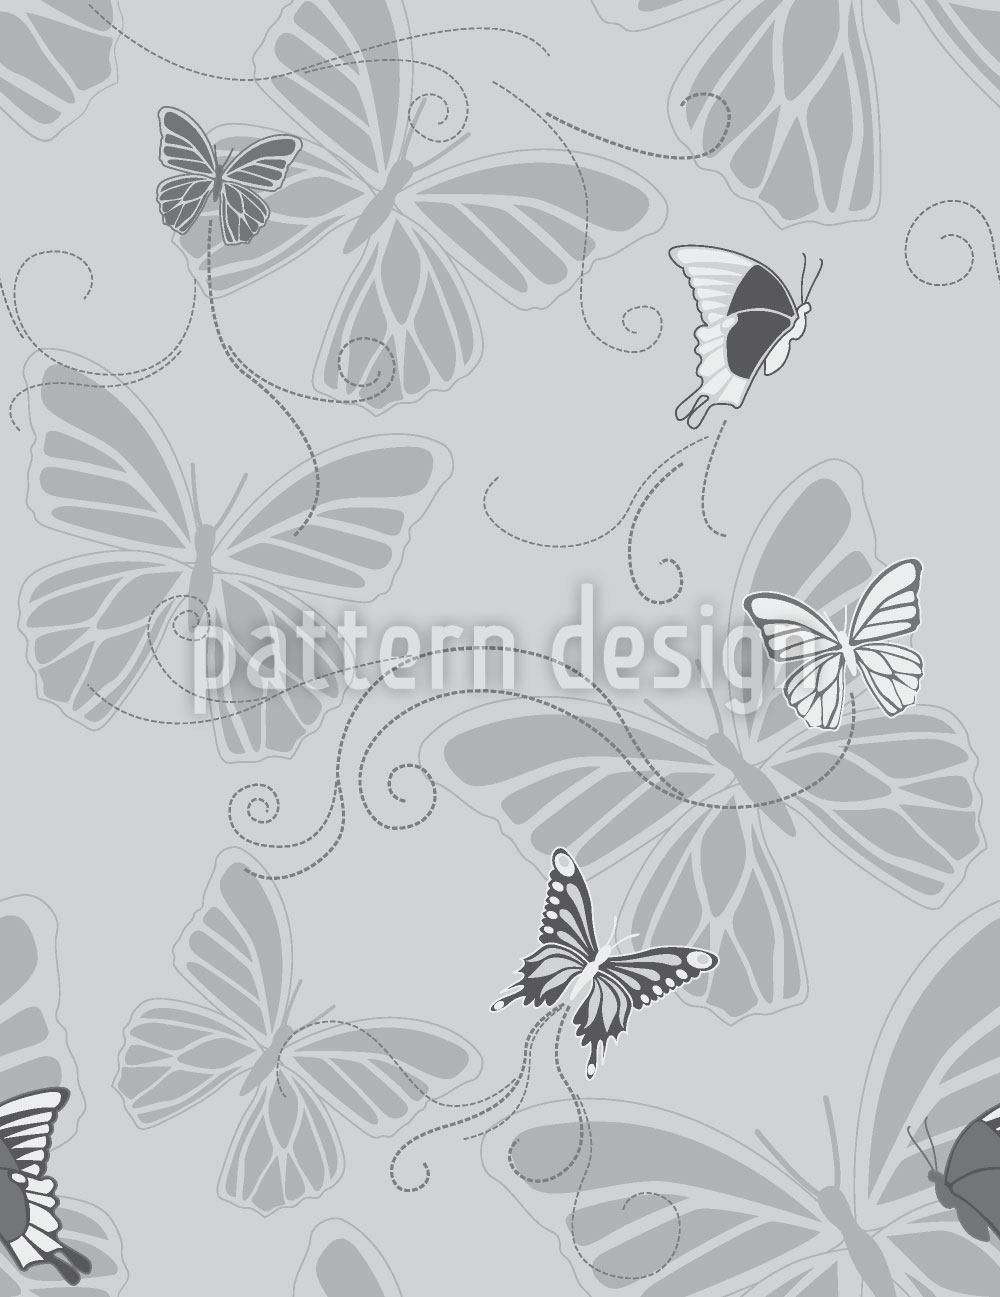 Pattern Wallpaper Monochrome Butterflies